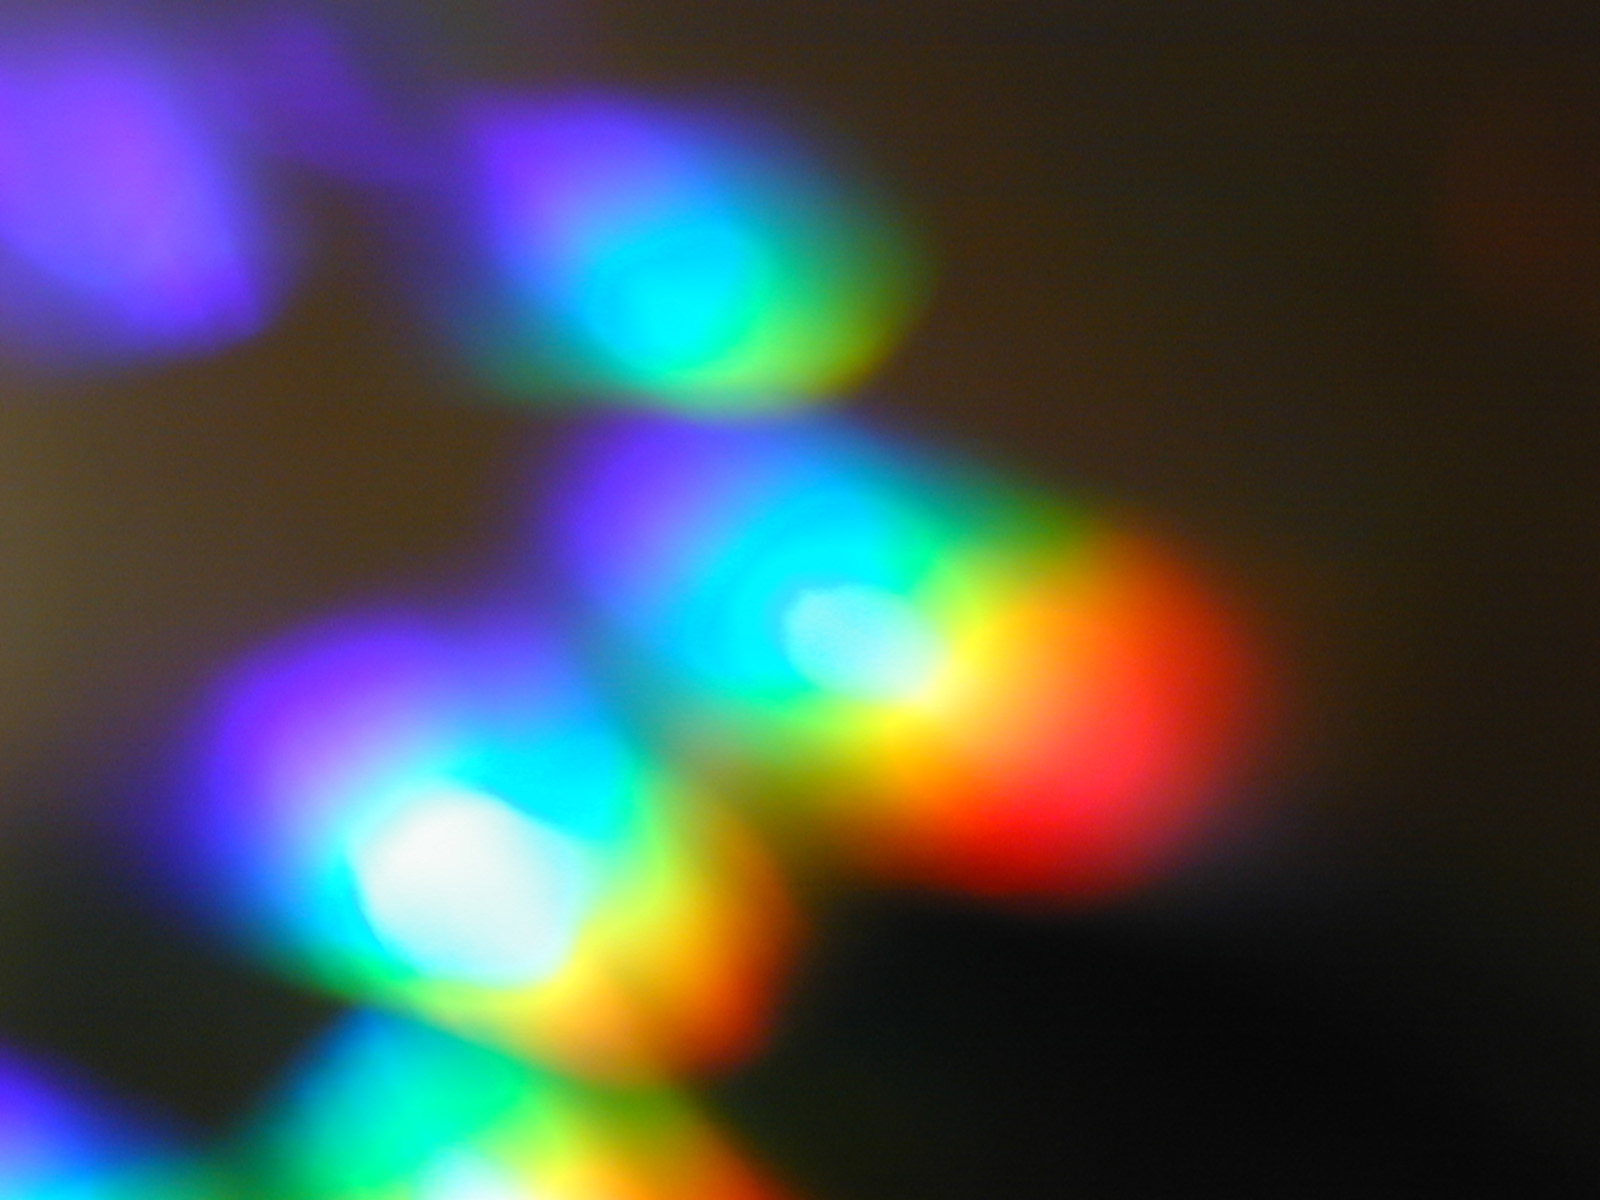 abstract soft focus ethereal image of rainbow coloured lights